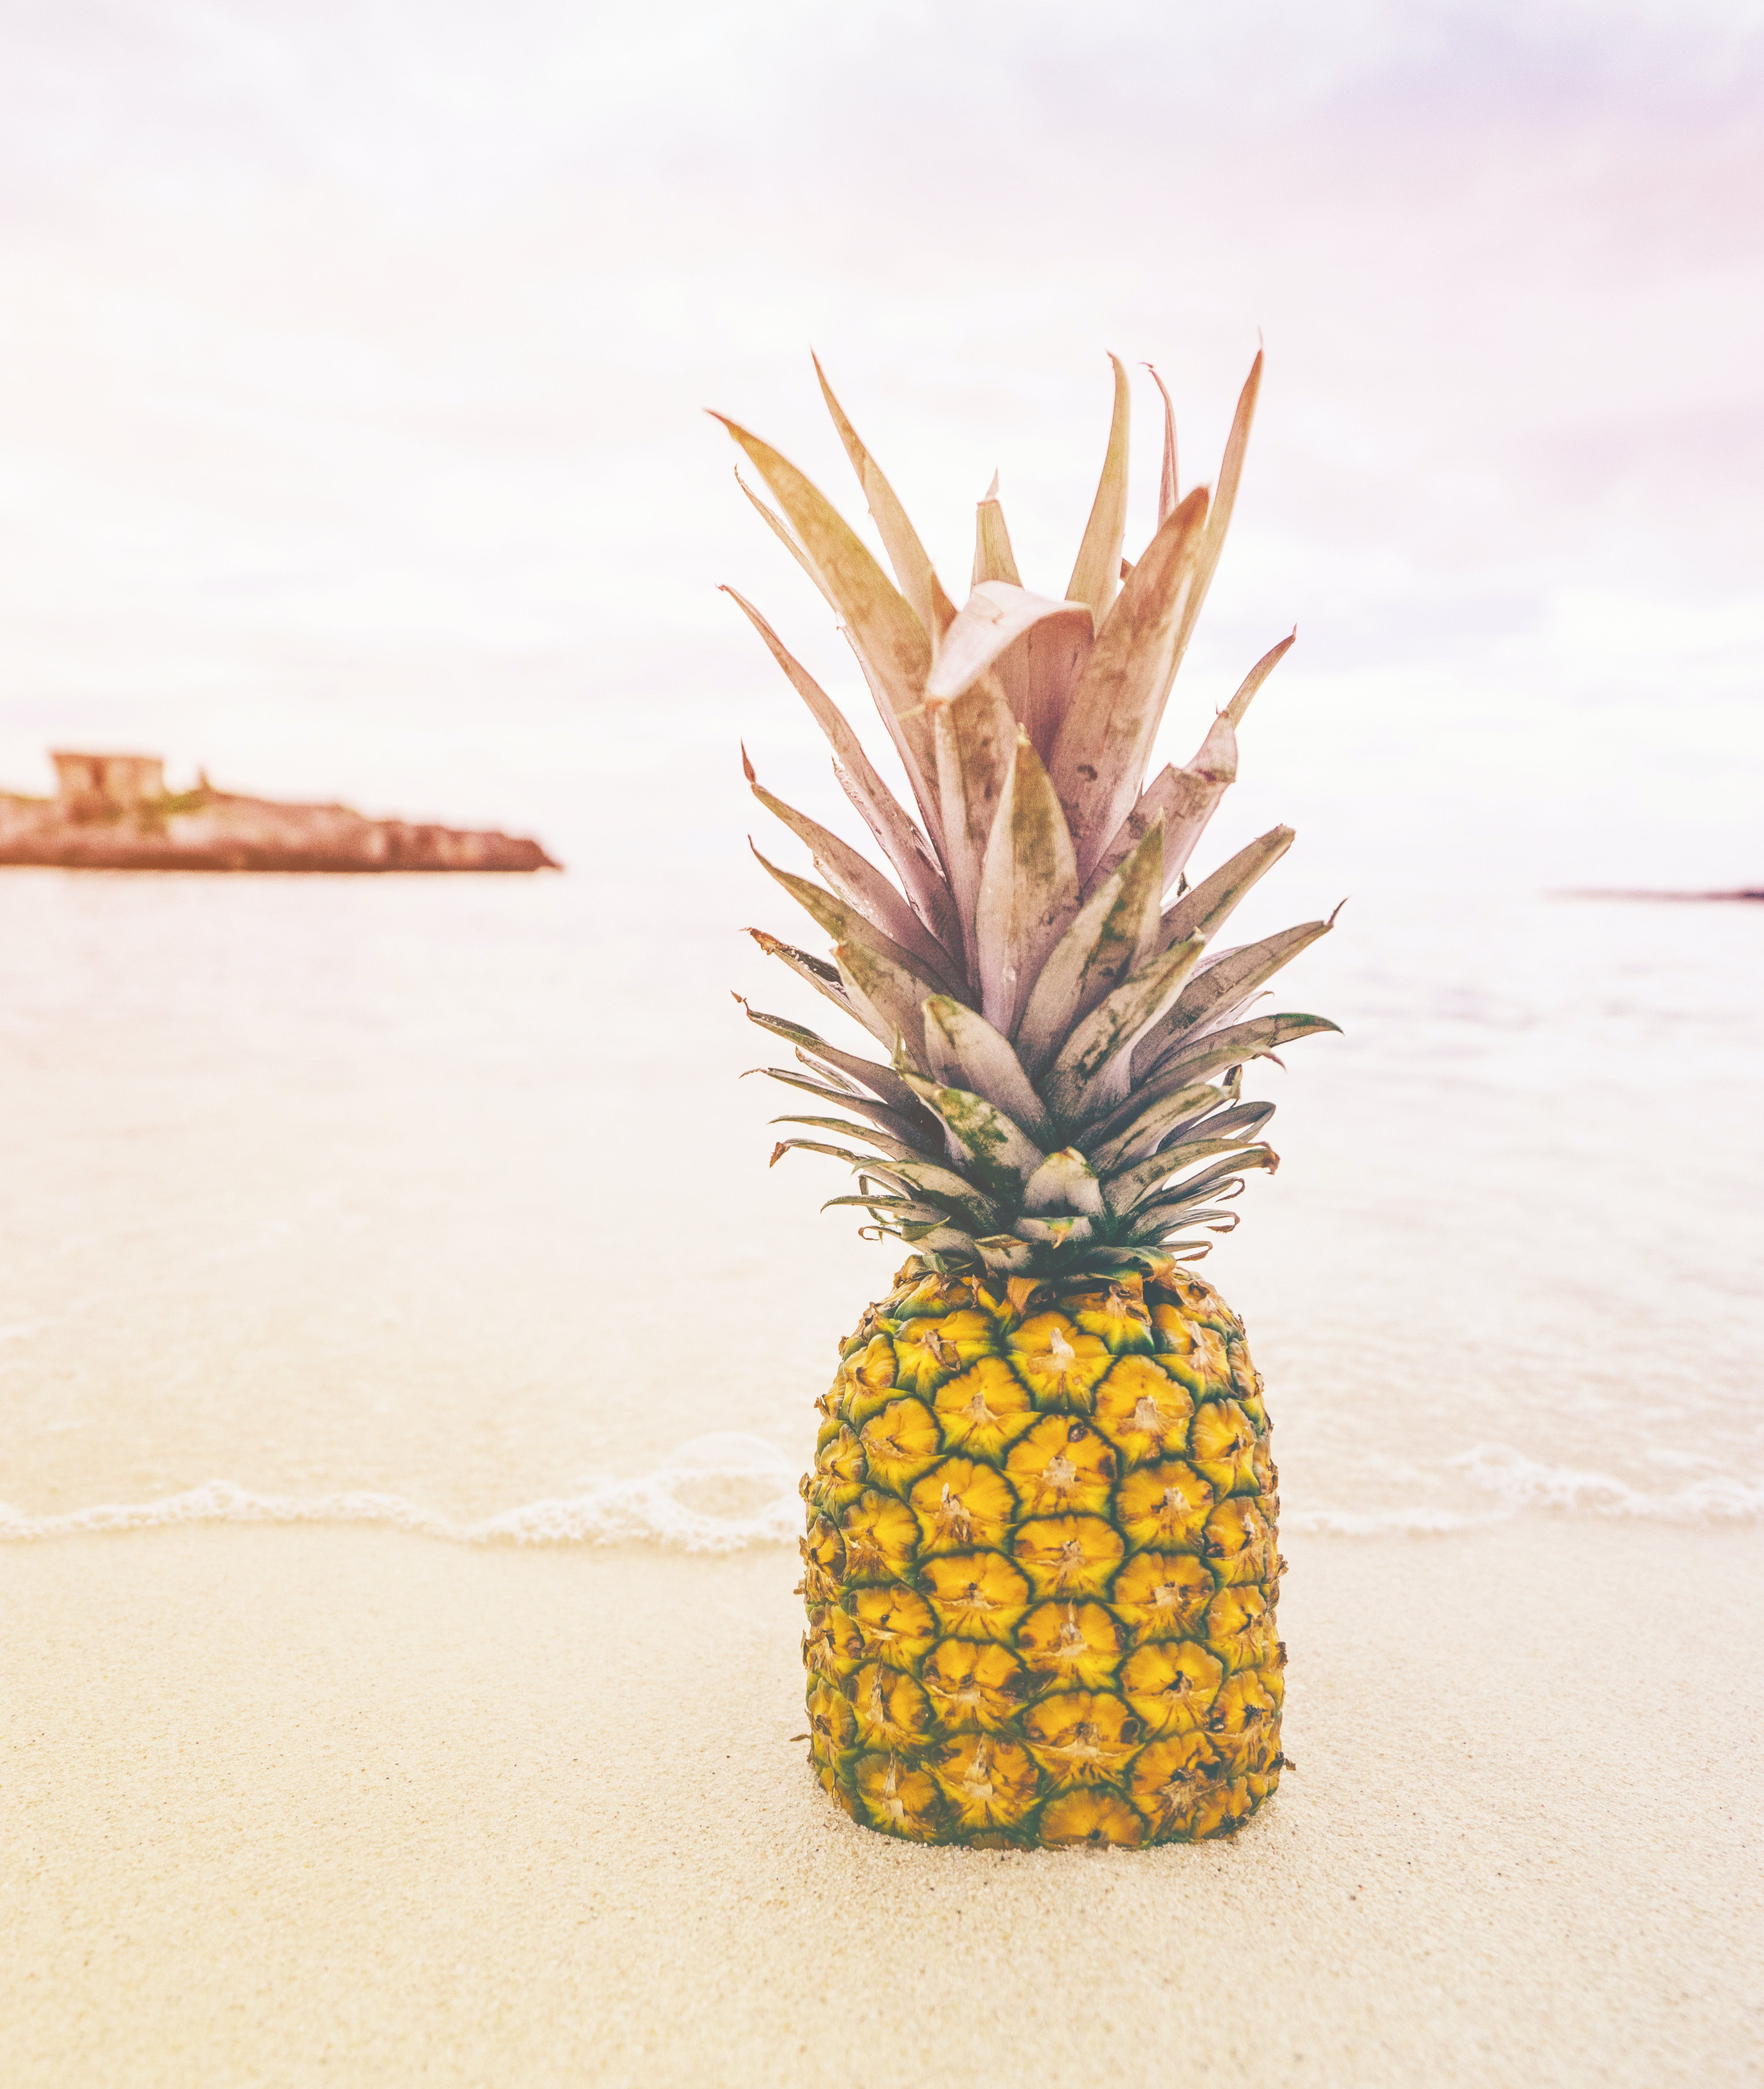 Pineapple at Beach Sand